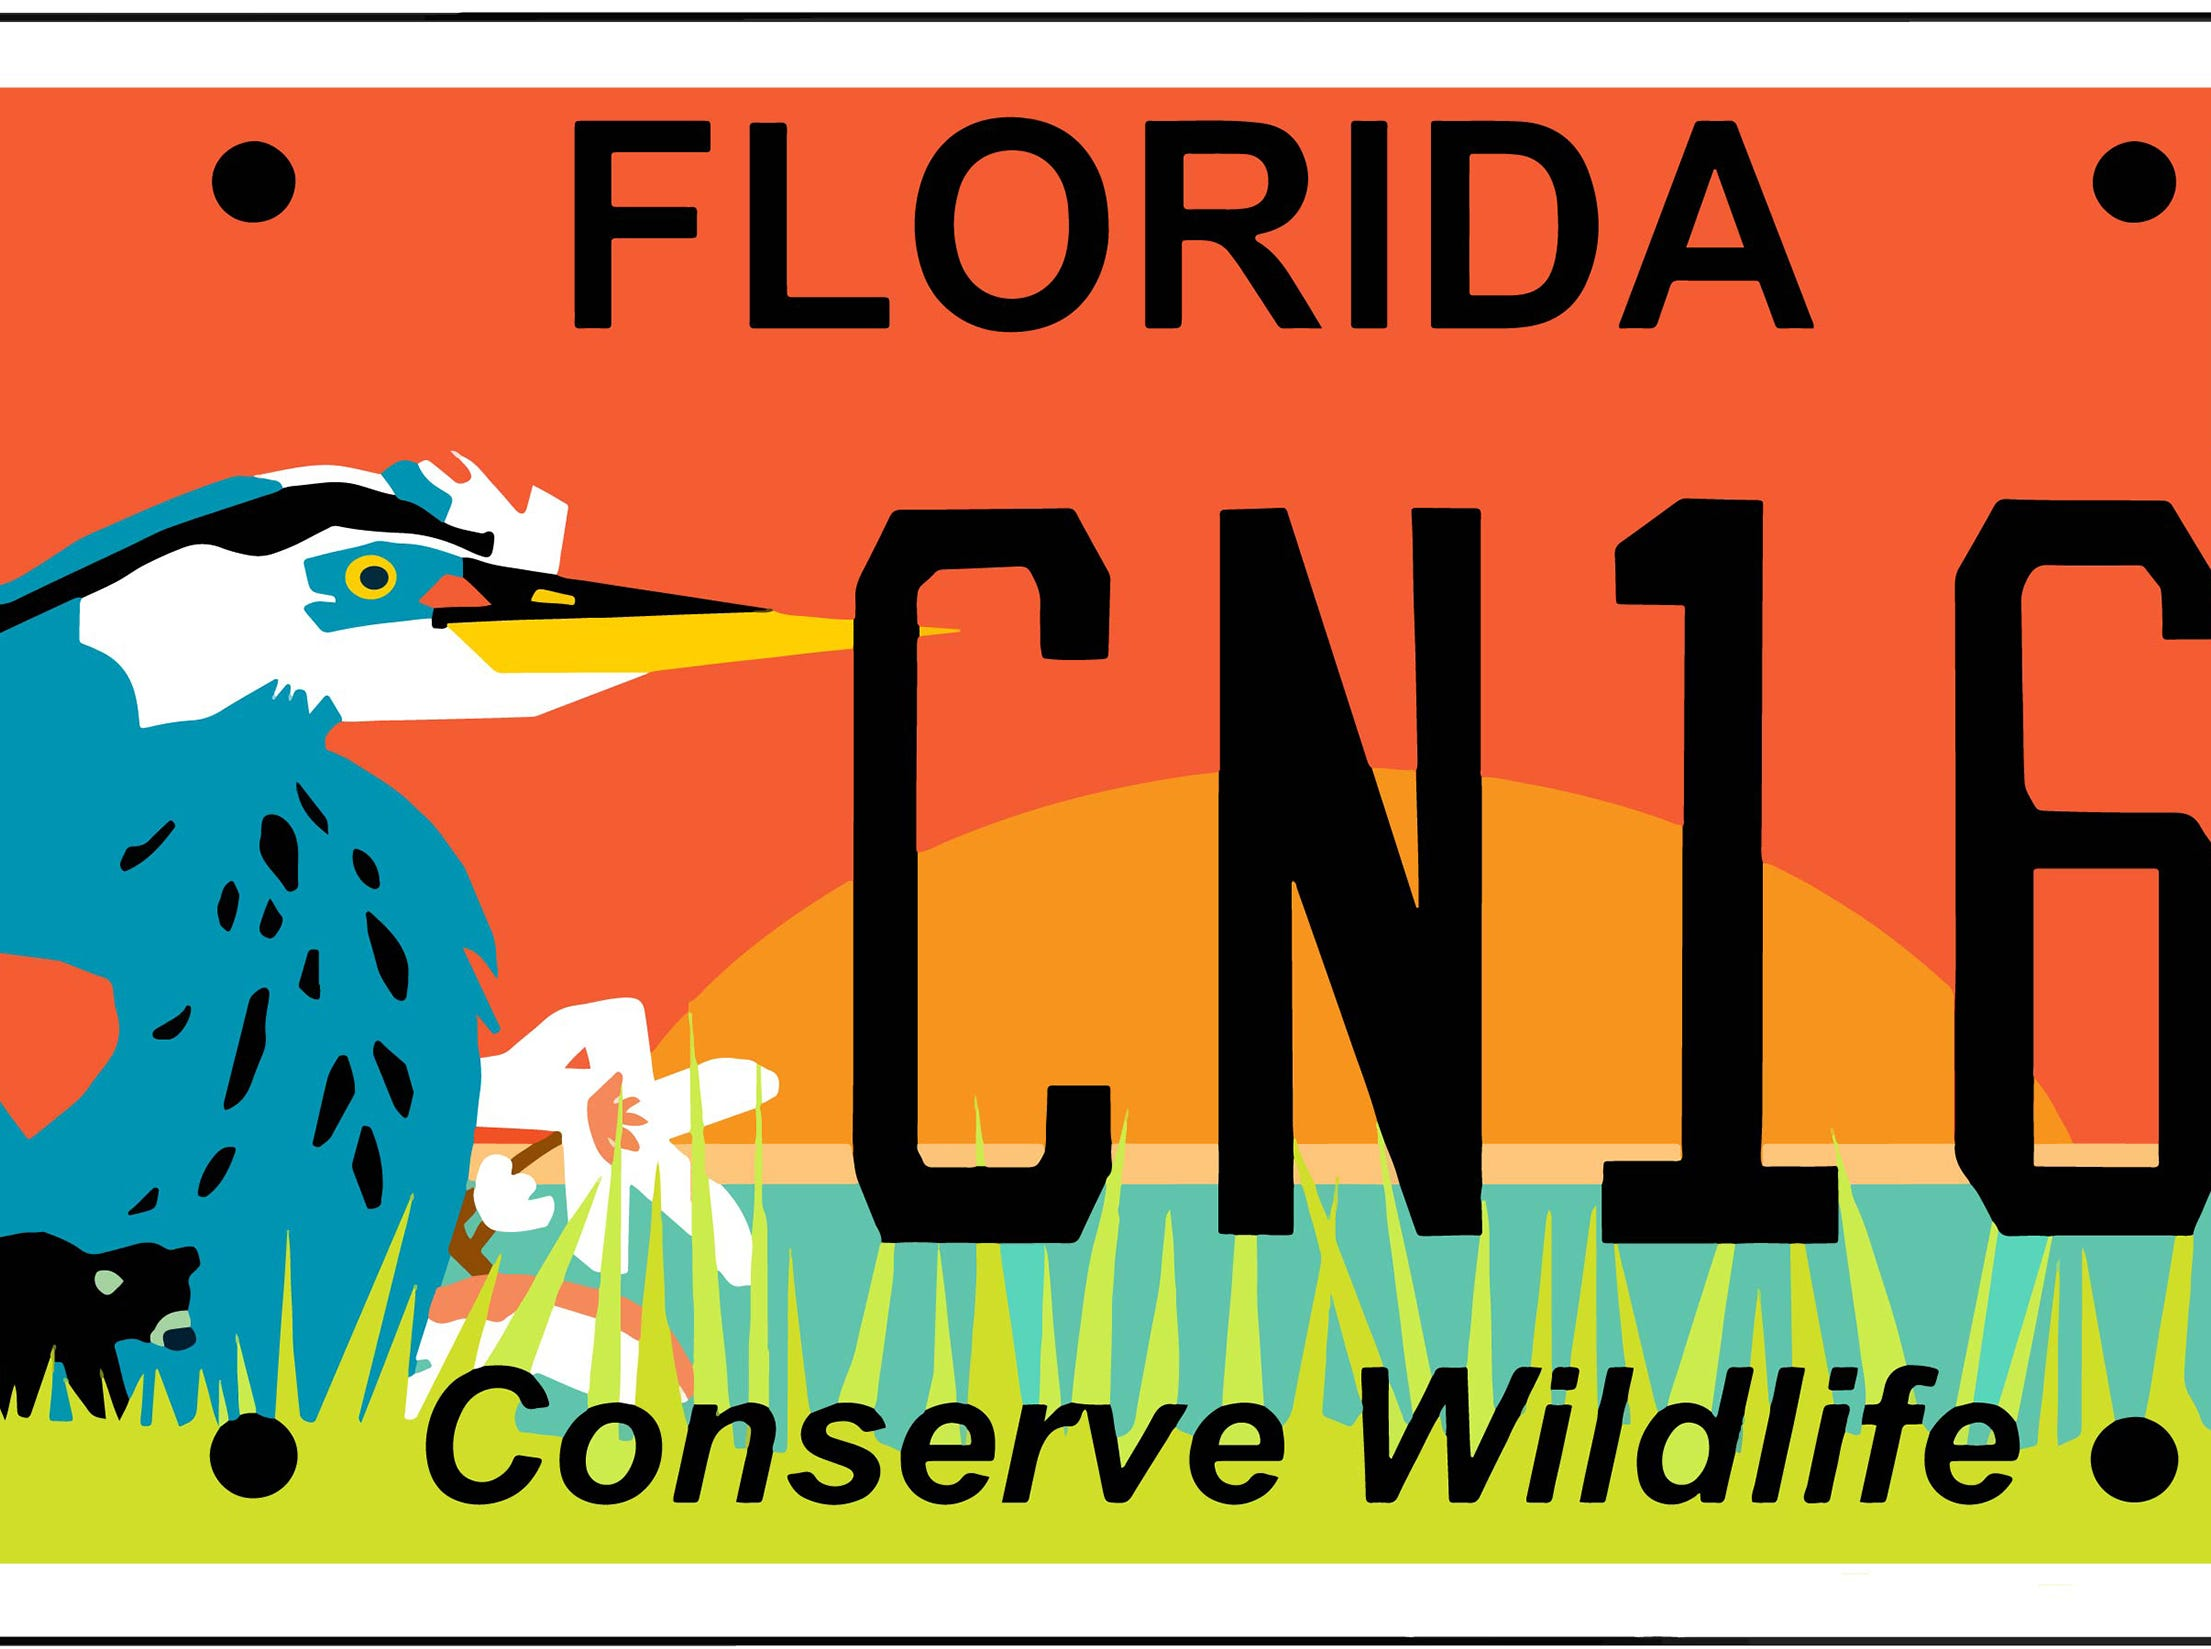 License plate design by Lauren Taylor Coney.